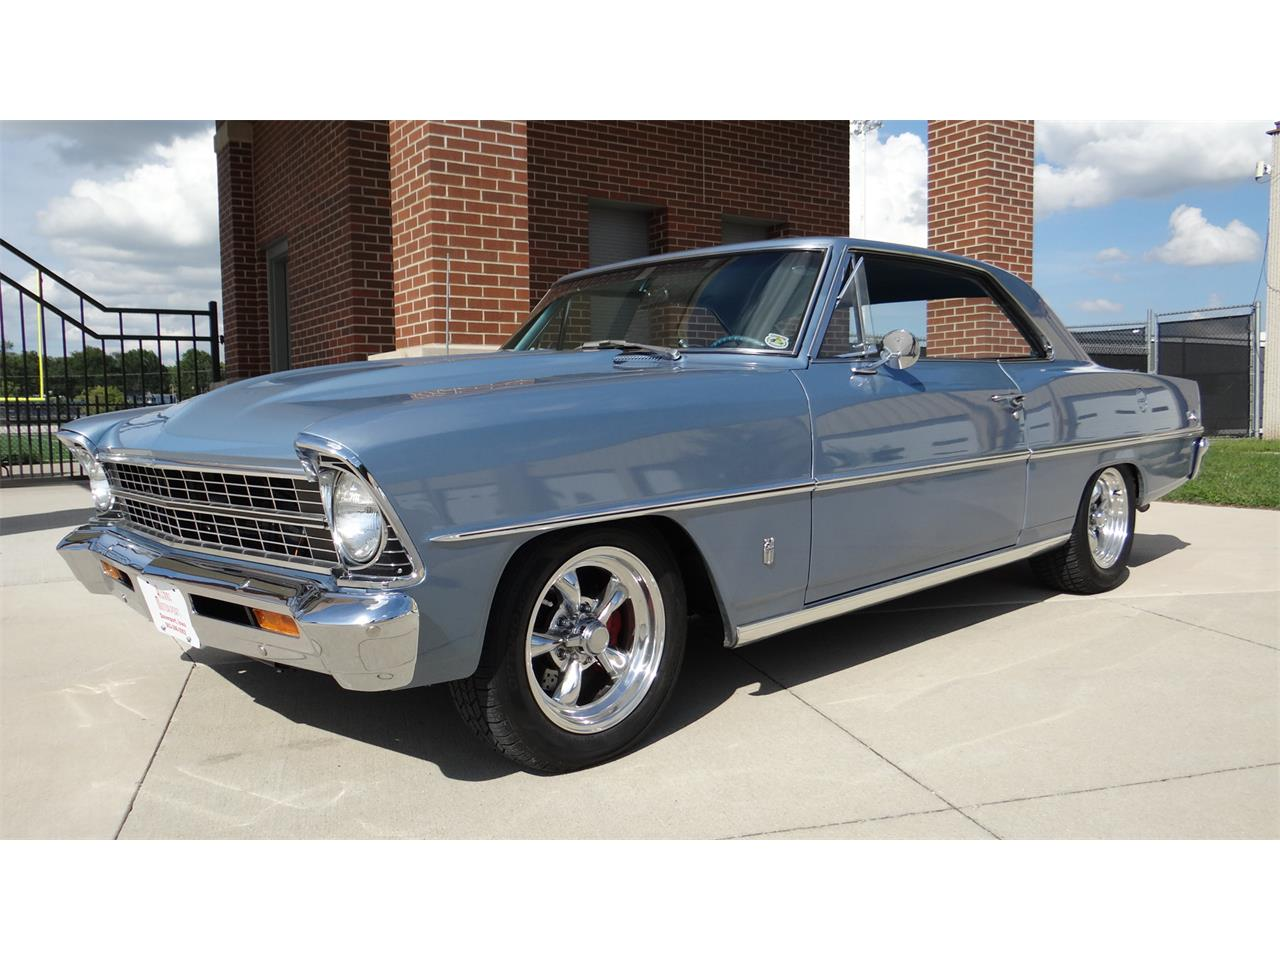 1967 Chevrolet Chevy II Nova (CC-1294164) for sale in Davenport, Iowa